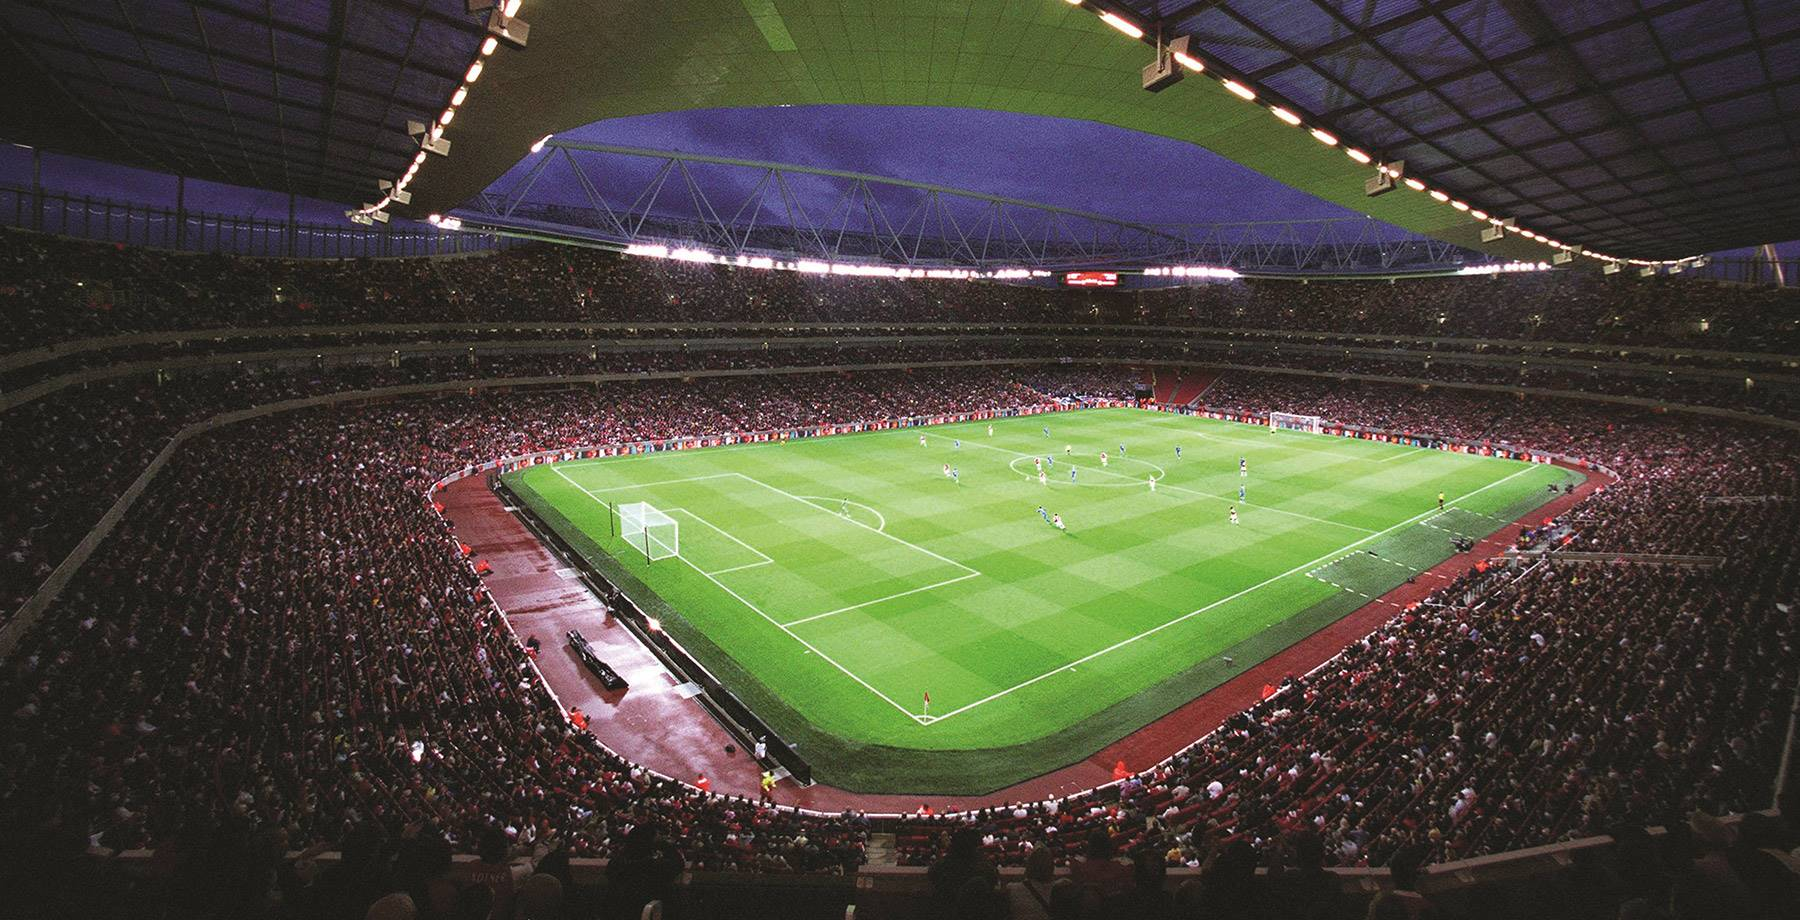 Inside Arsenal's Emirates Stadium